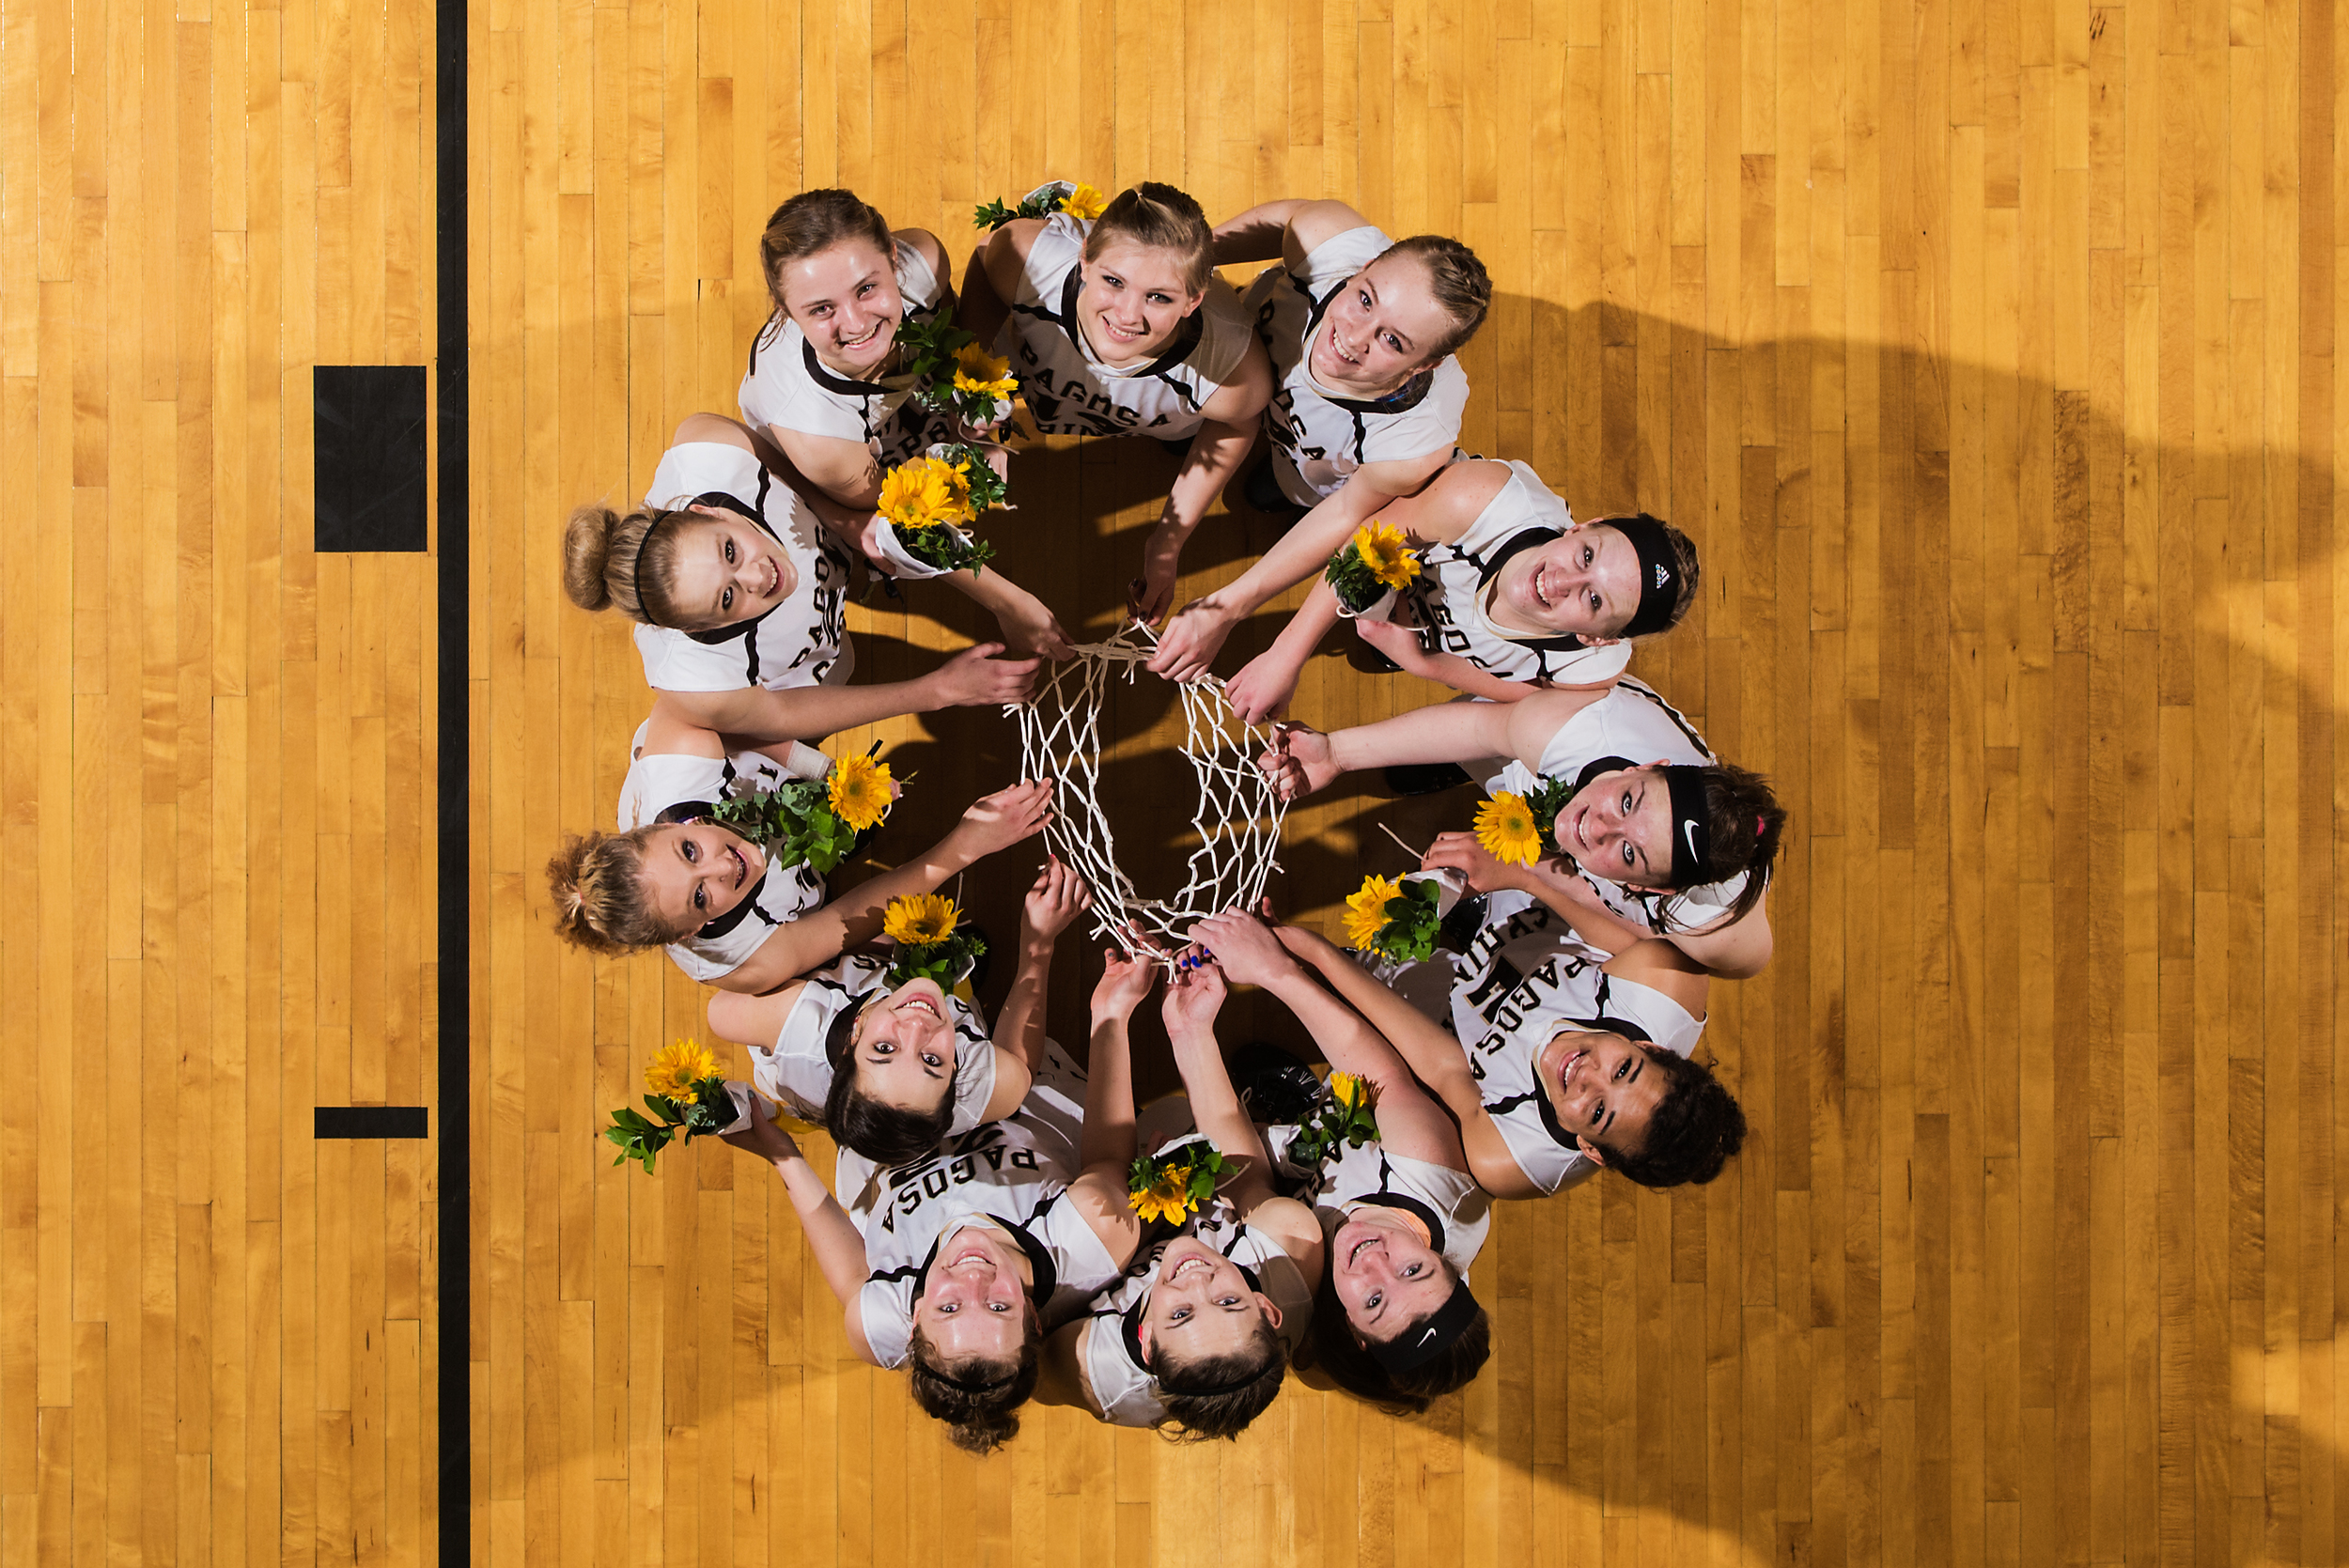 Basketball team championship portrait with remote camera